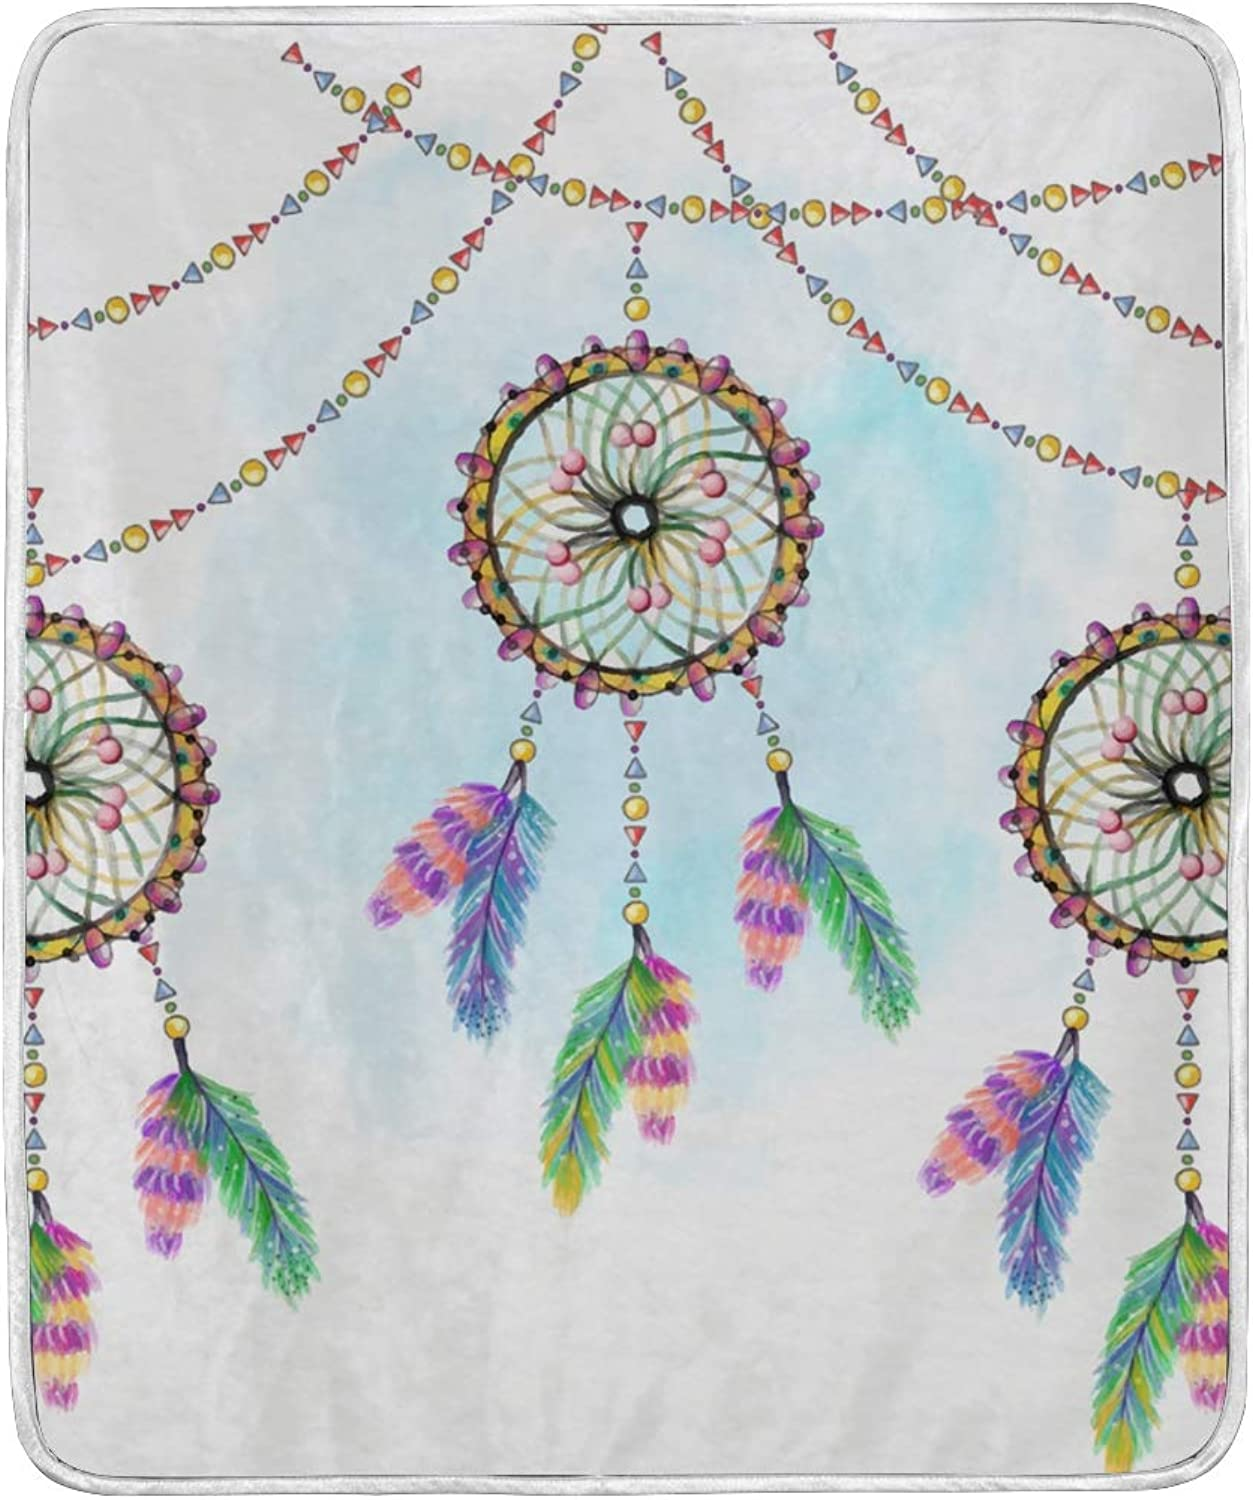 VIMMUCIR Home Decor Watercolor Dream Catchers Garlands Blanket Soft Warm Throw Blankets Bed Sofa Lightweight Travelling Camping 50 x 60 Inch Kids Adults